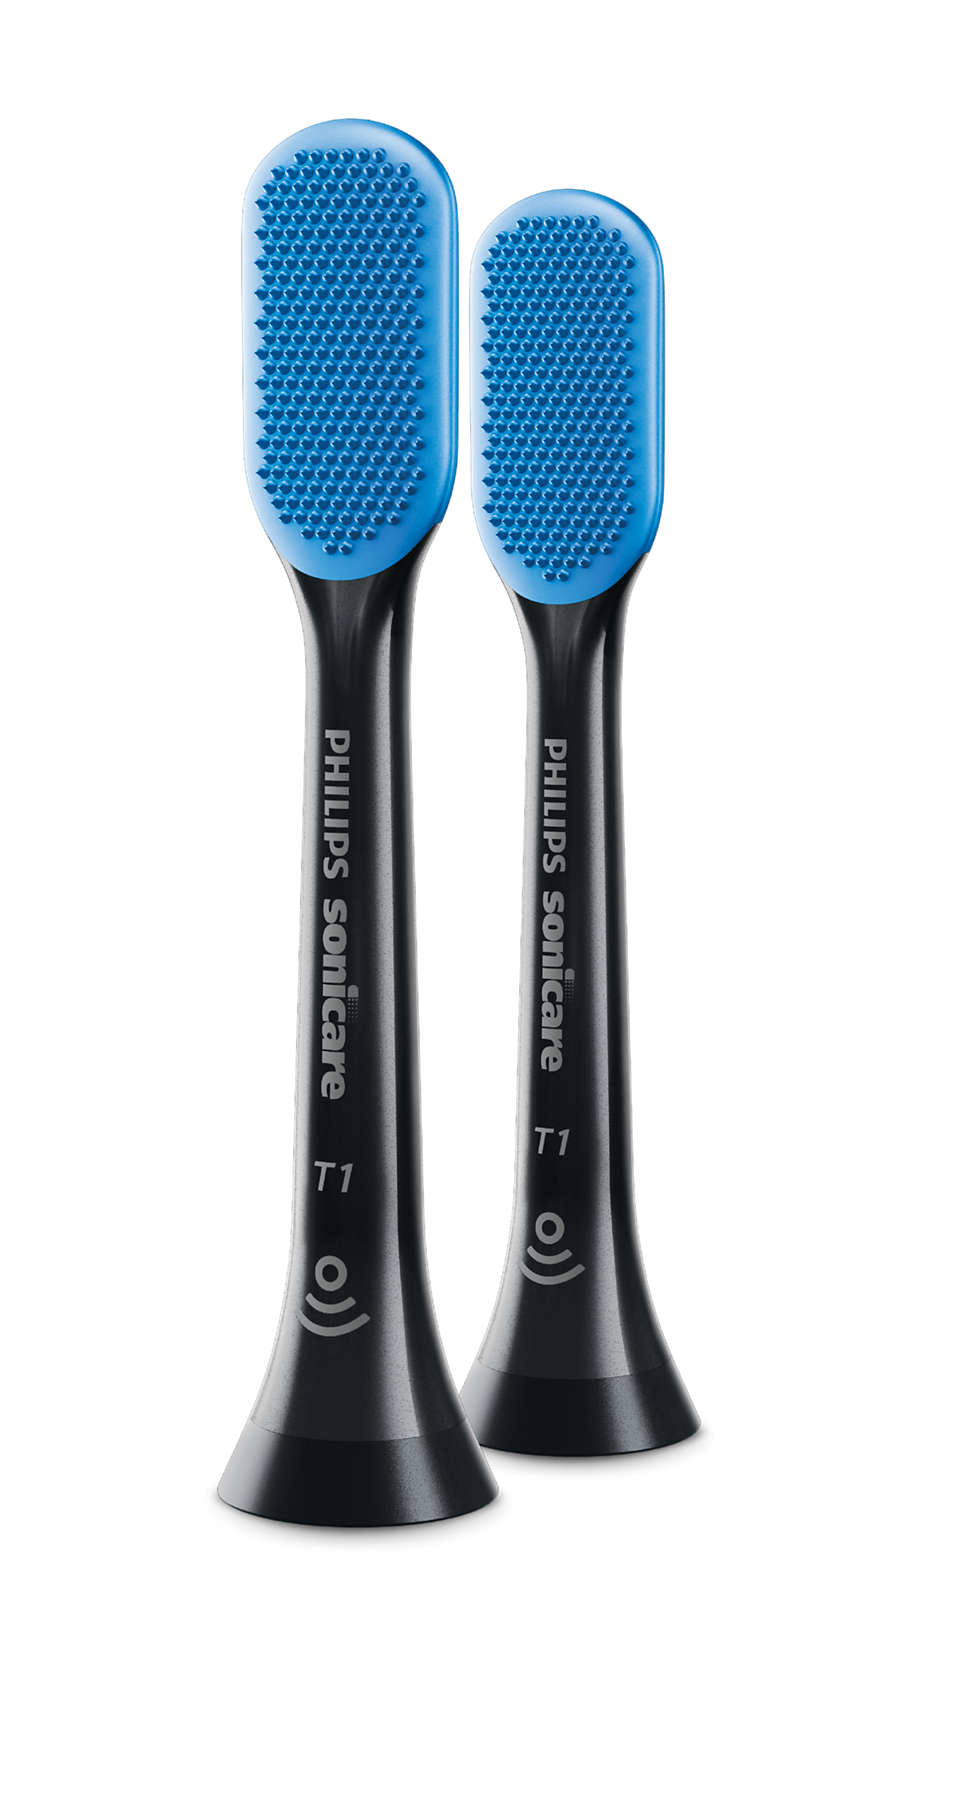 A Philips Sonicare clean, for your tongue